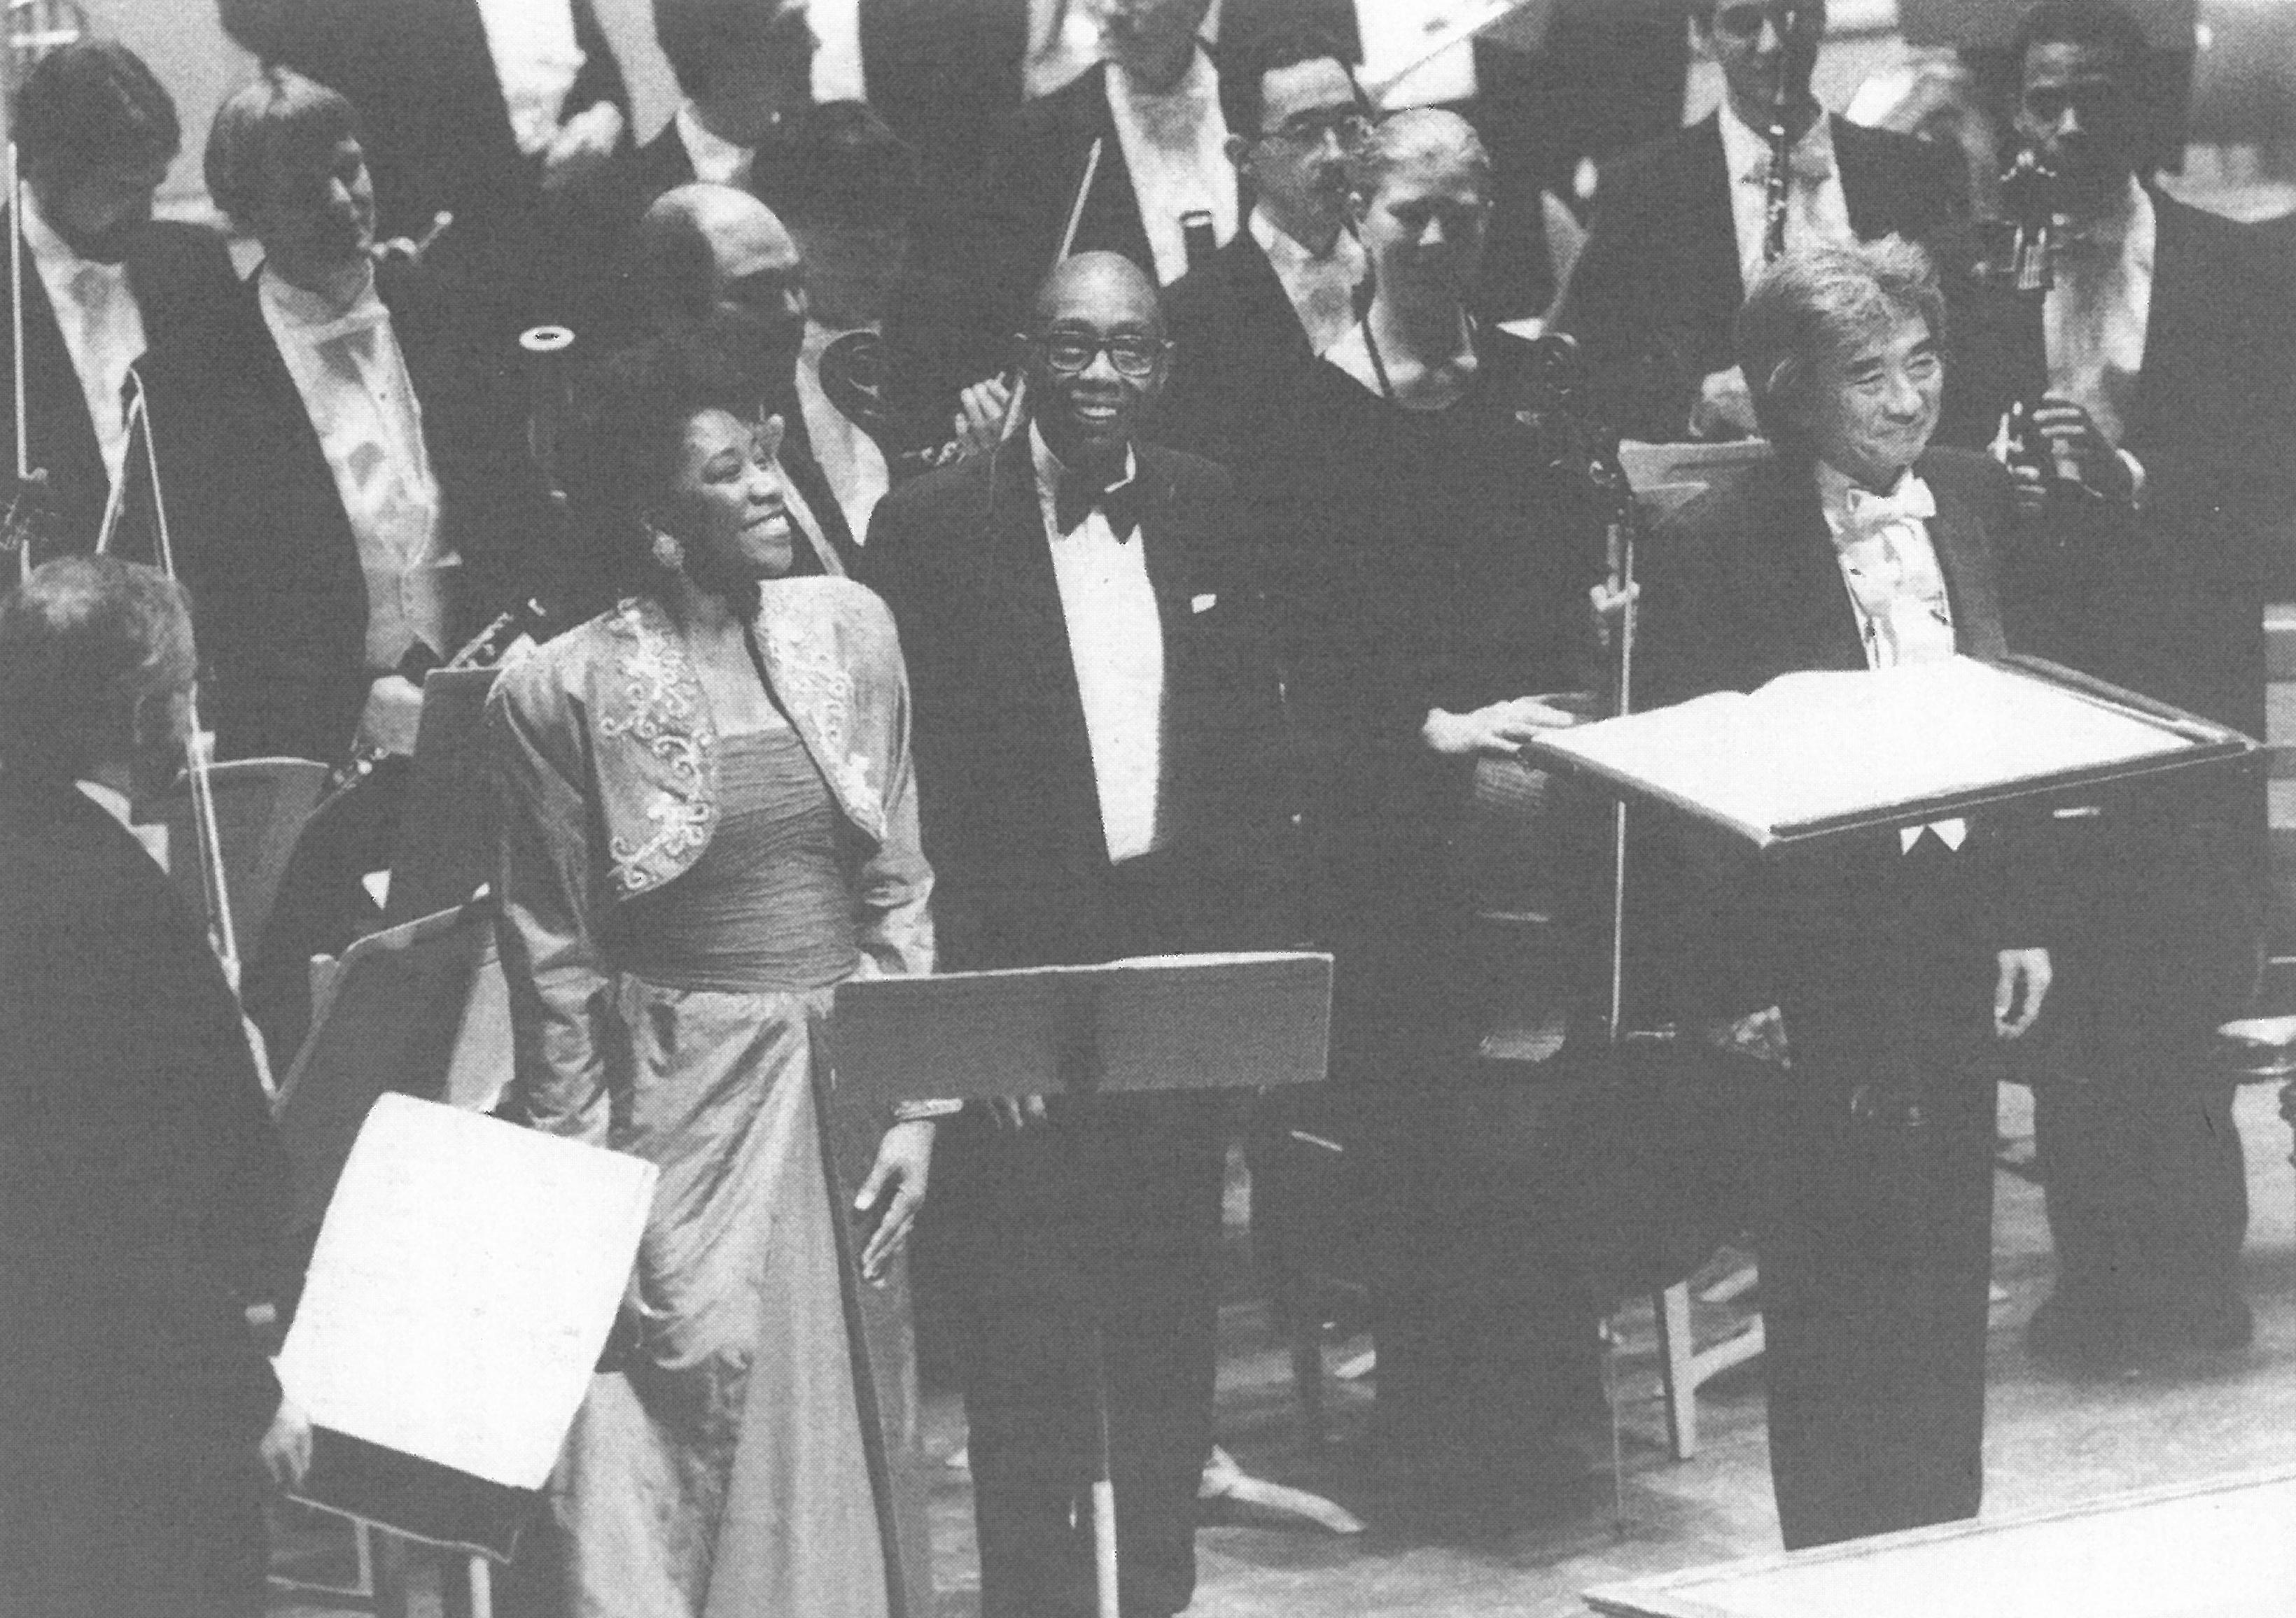 Historic photo of soprano Faye Robinson, George Walker, and conductor Seiji Ozawa with the Boston Symphony Orchestra on the stage of Orchestra Hall in Boston in 1996.